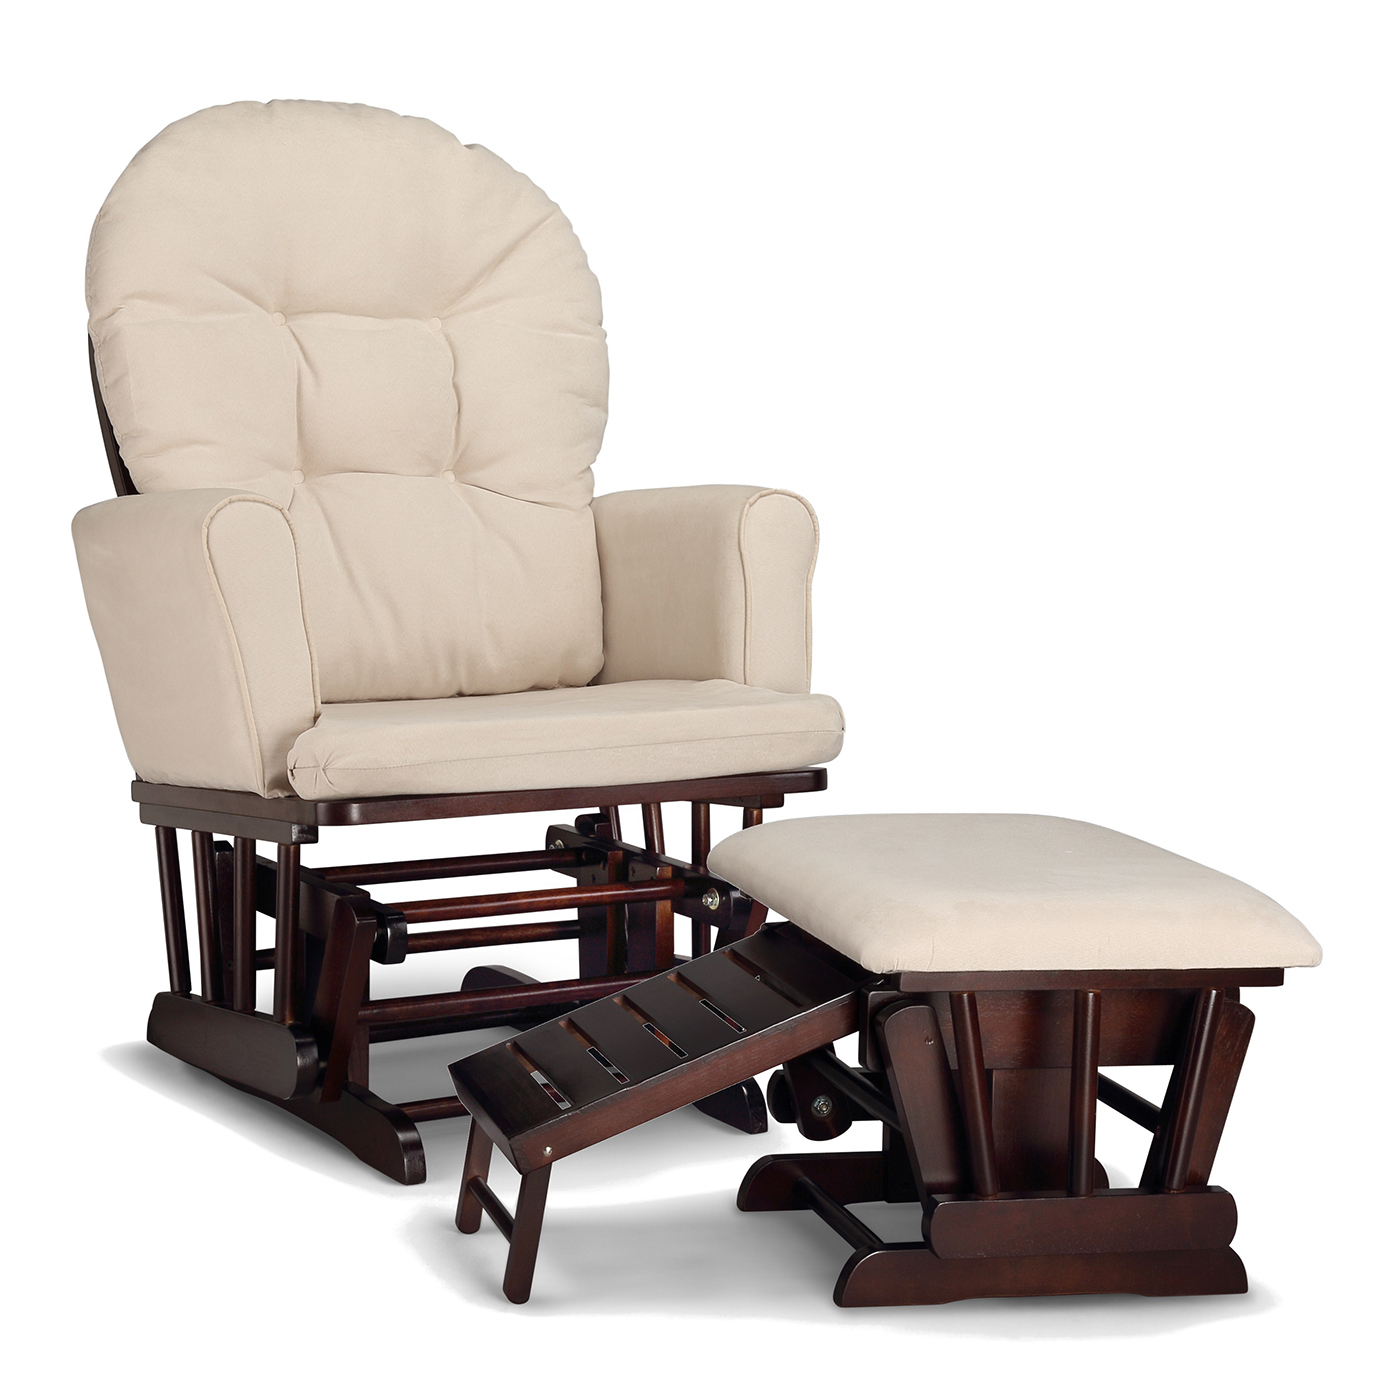 Graco Cribs Parker Semi Upholstered Glider And Nursing Ottoman In Espresso  With Beige Cushions FREE SHIPPING